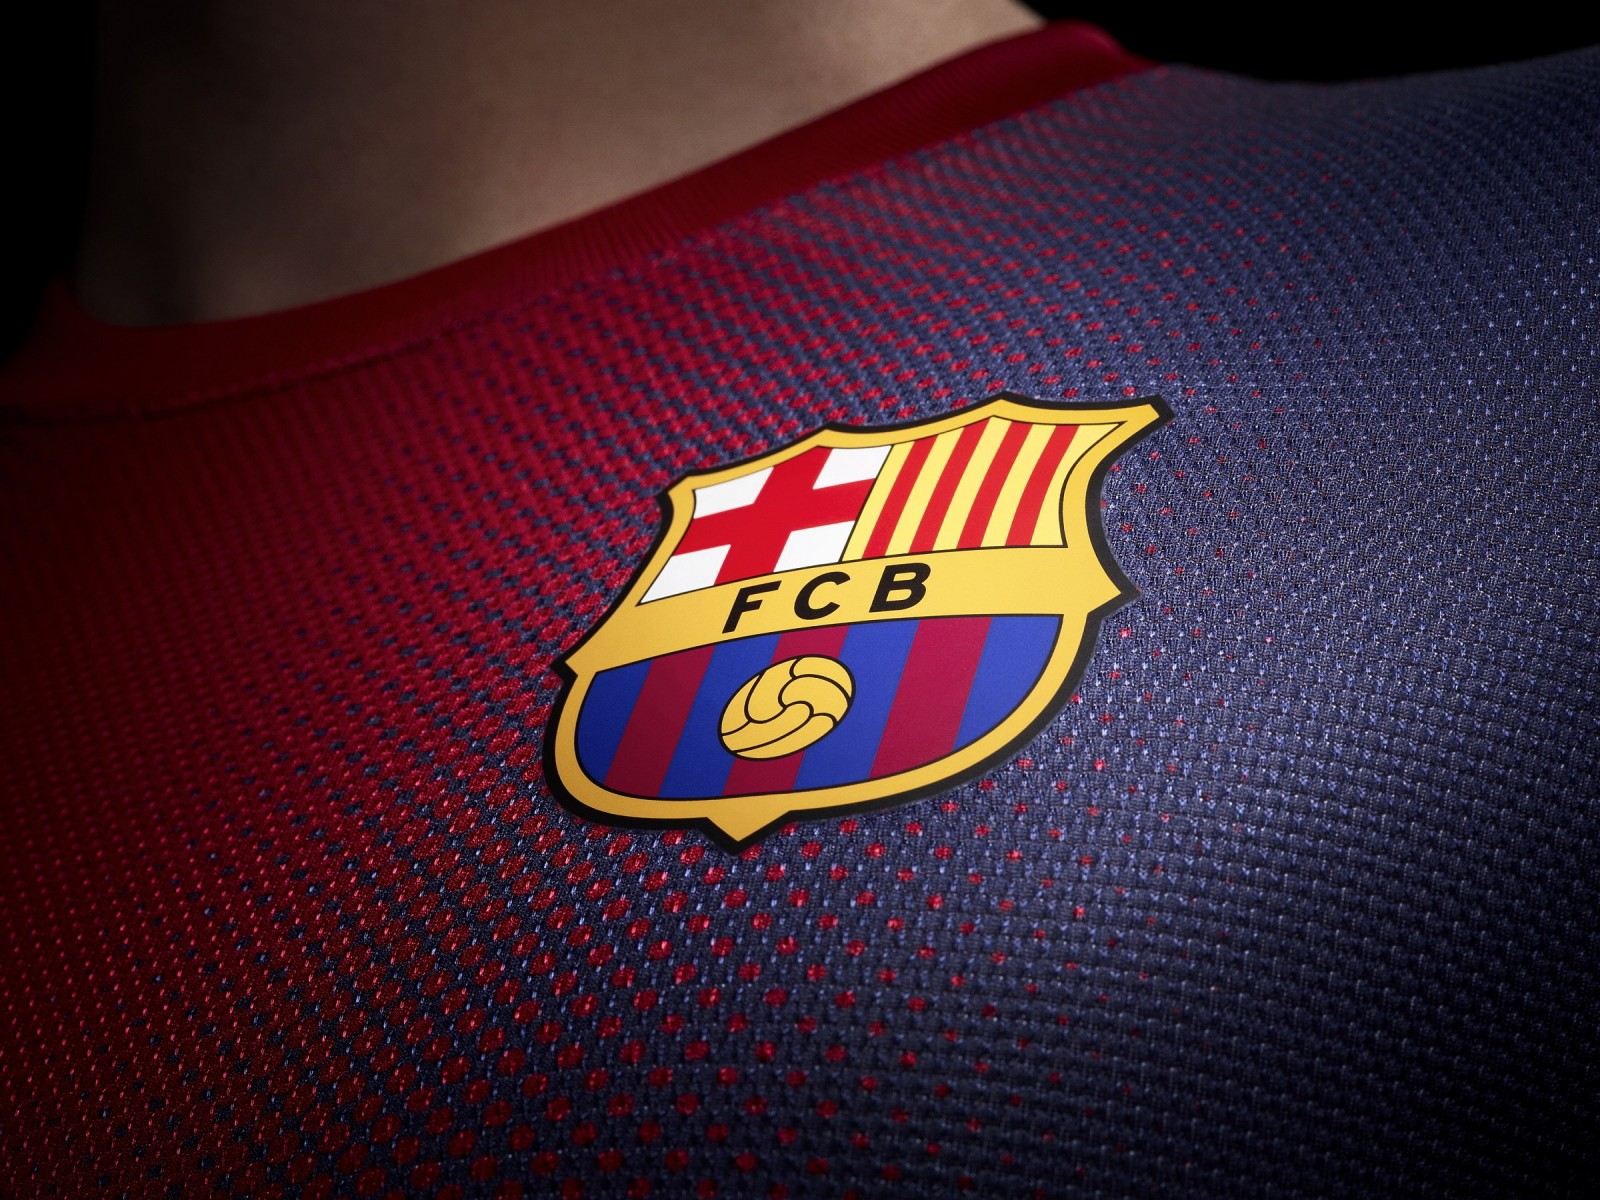 FC Barcelona Logo Shirt Wallpaper for Desktop 1600x1200